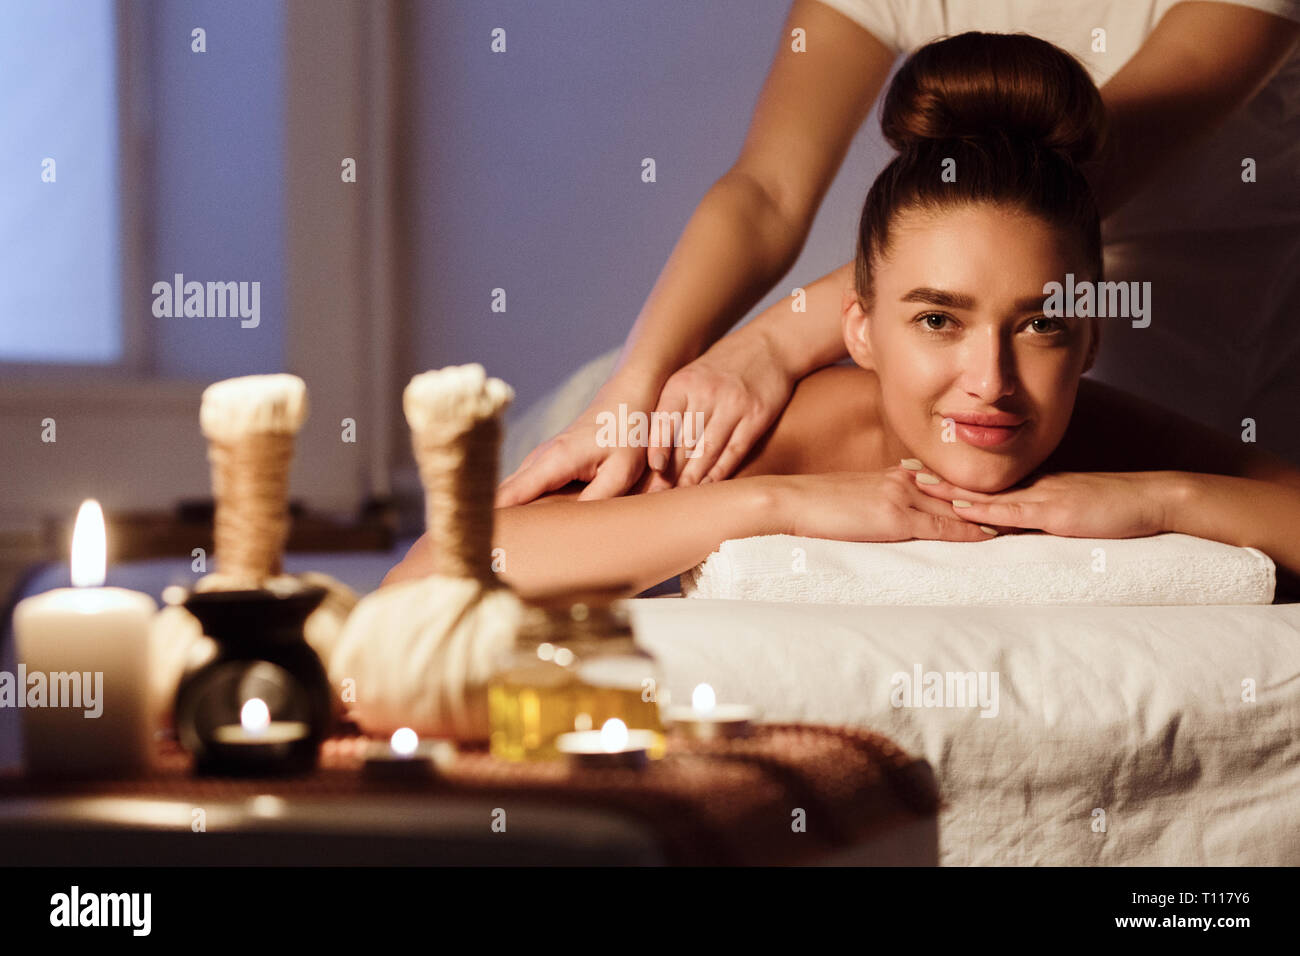 Traditional oriental aroma therapy. Woman relaxing in spa salon - Stock Image